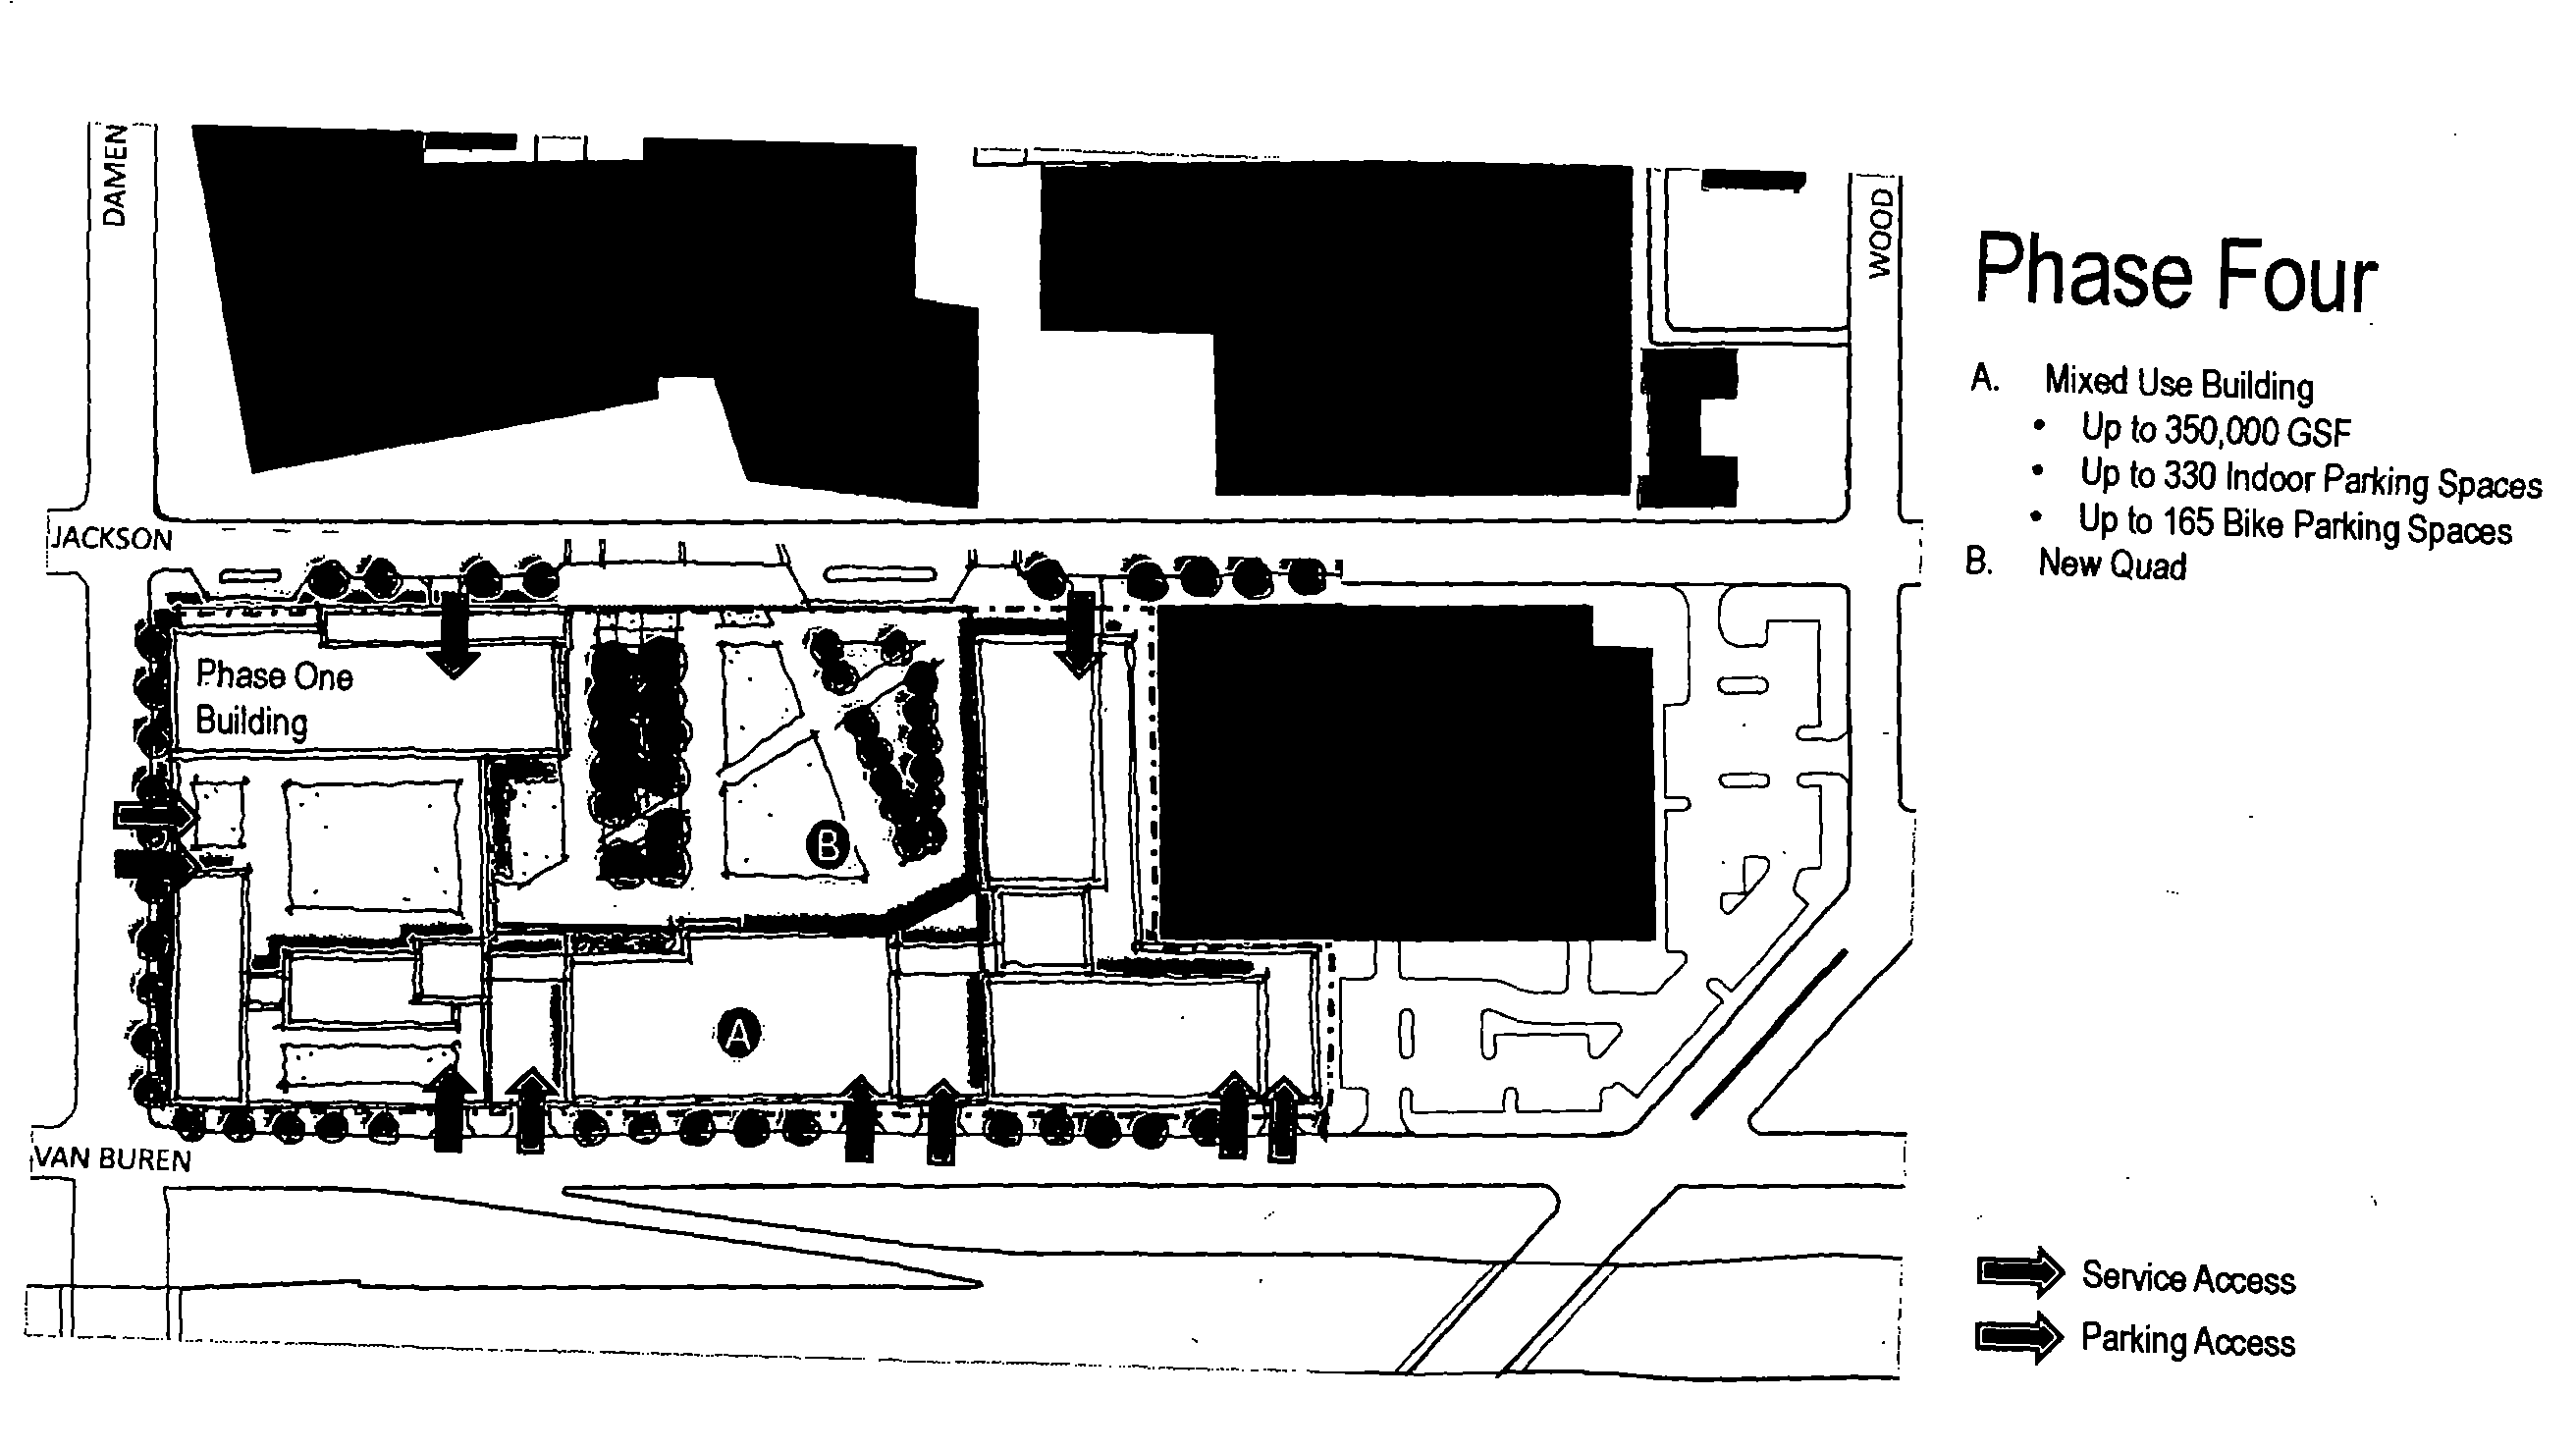 Diagram of the new Rush University Medical Center expansion